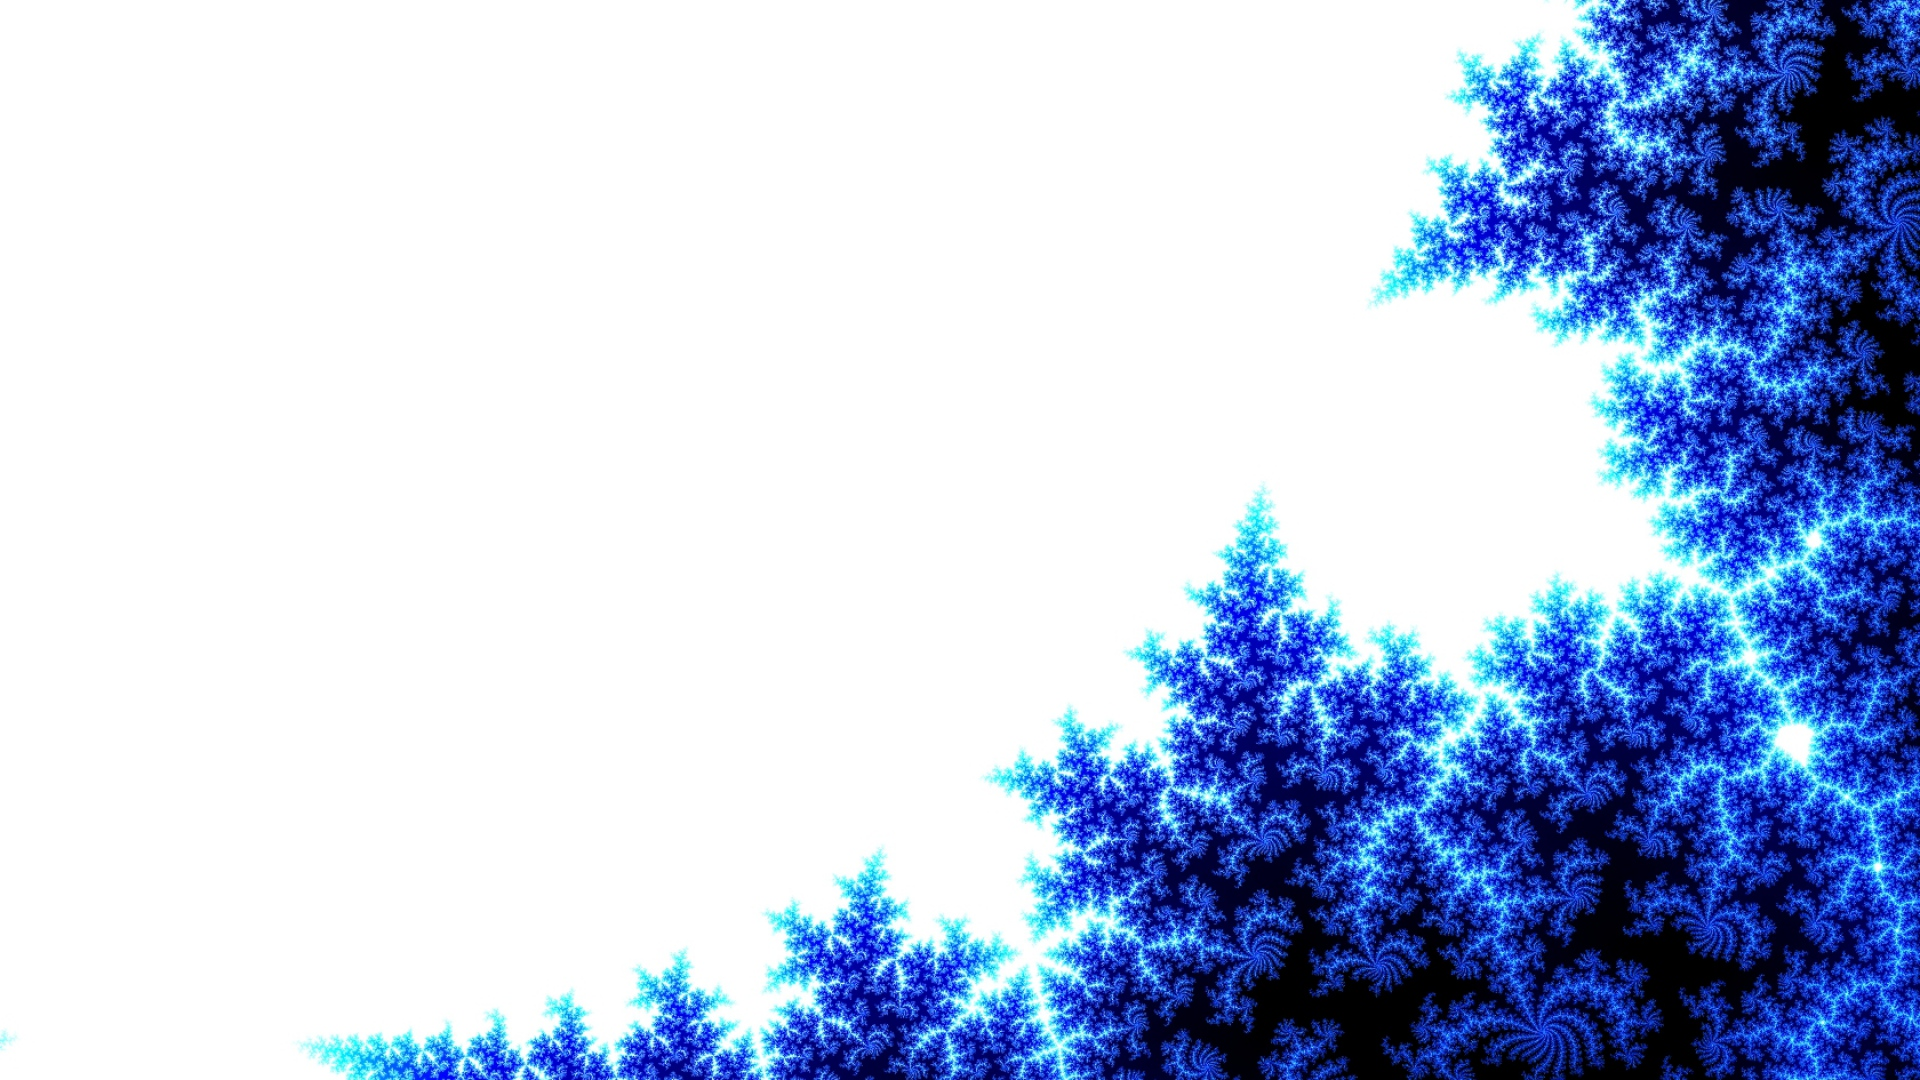 download wallpaper 1920x1080 abstract, blue, tree, white full hd